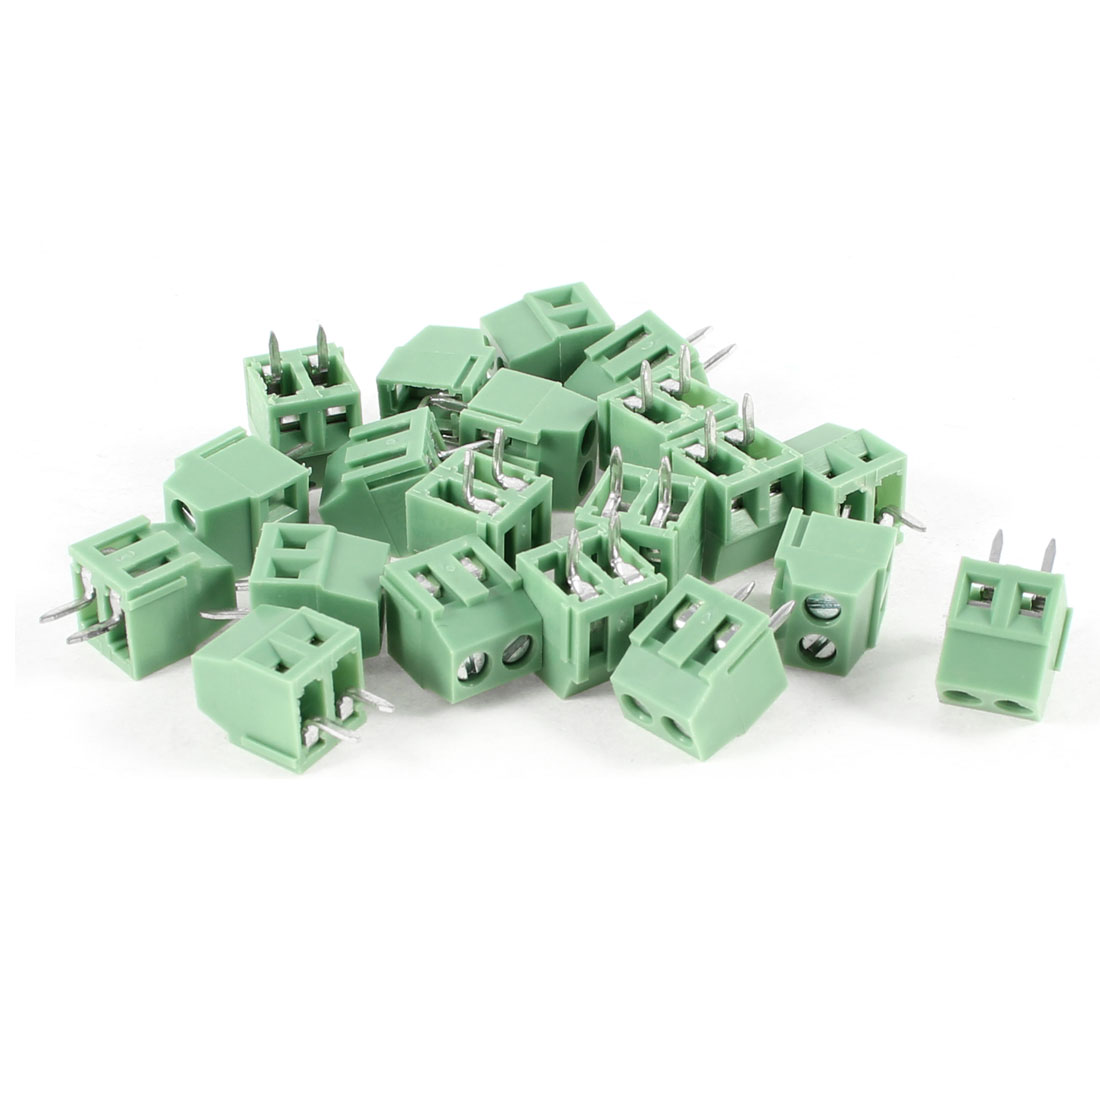 20 Pcs 300V 10A 2 Positions 3.5mm Pitch Pluggable Terminal Block Green